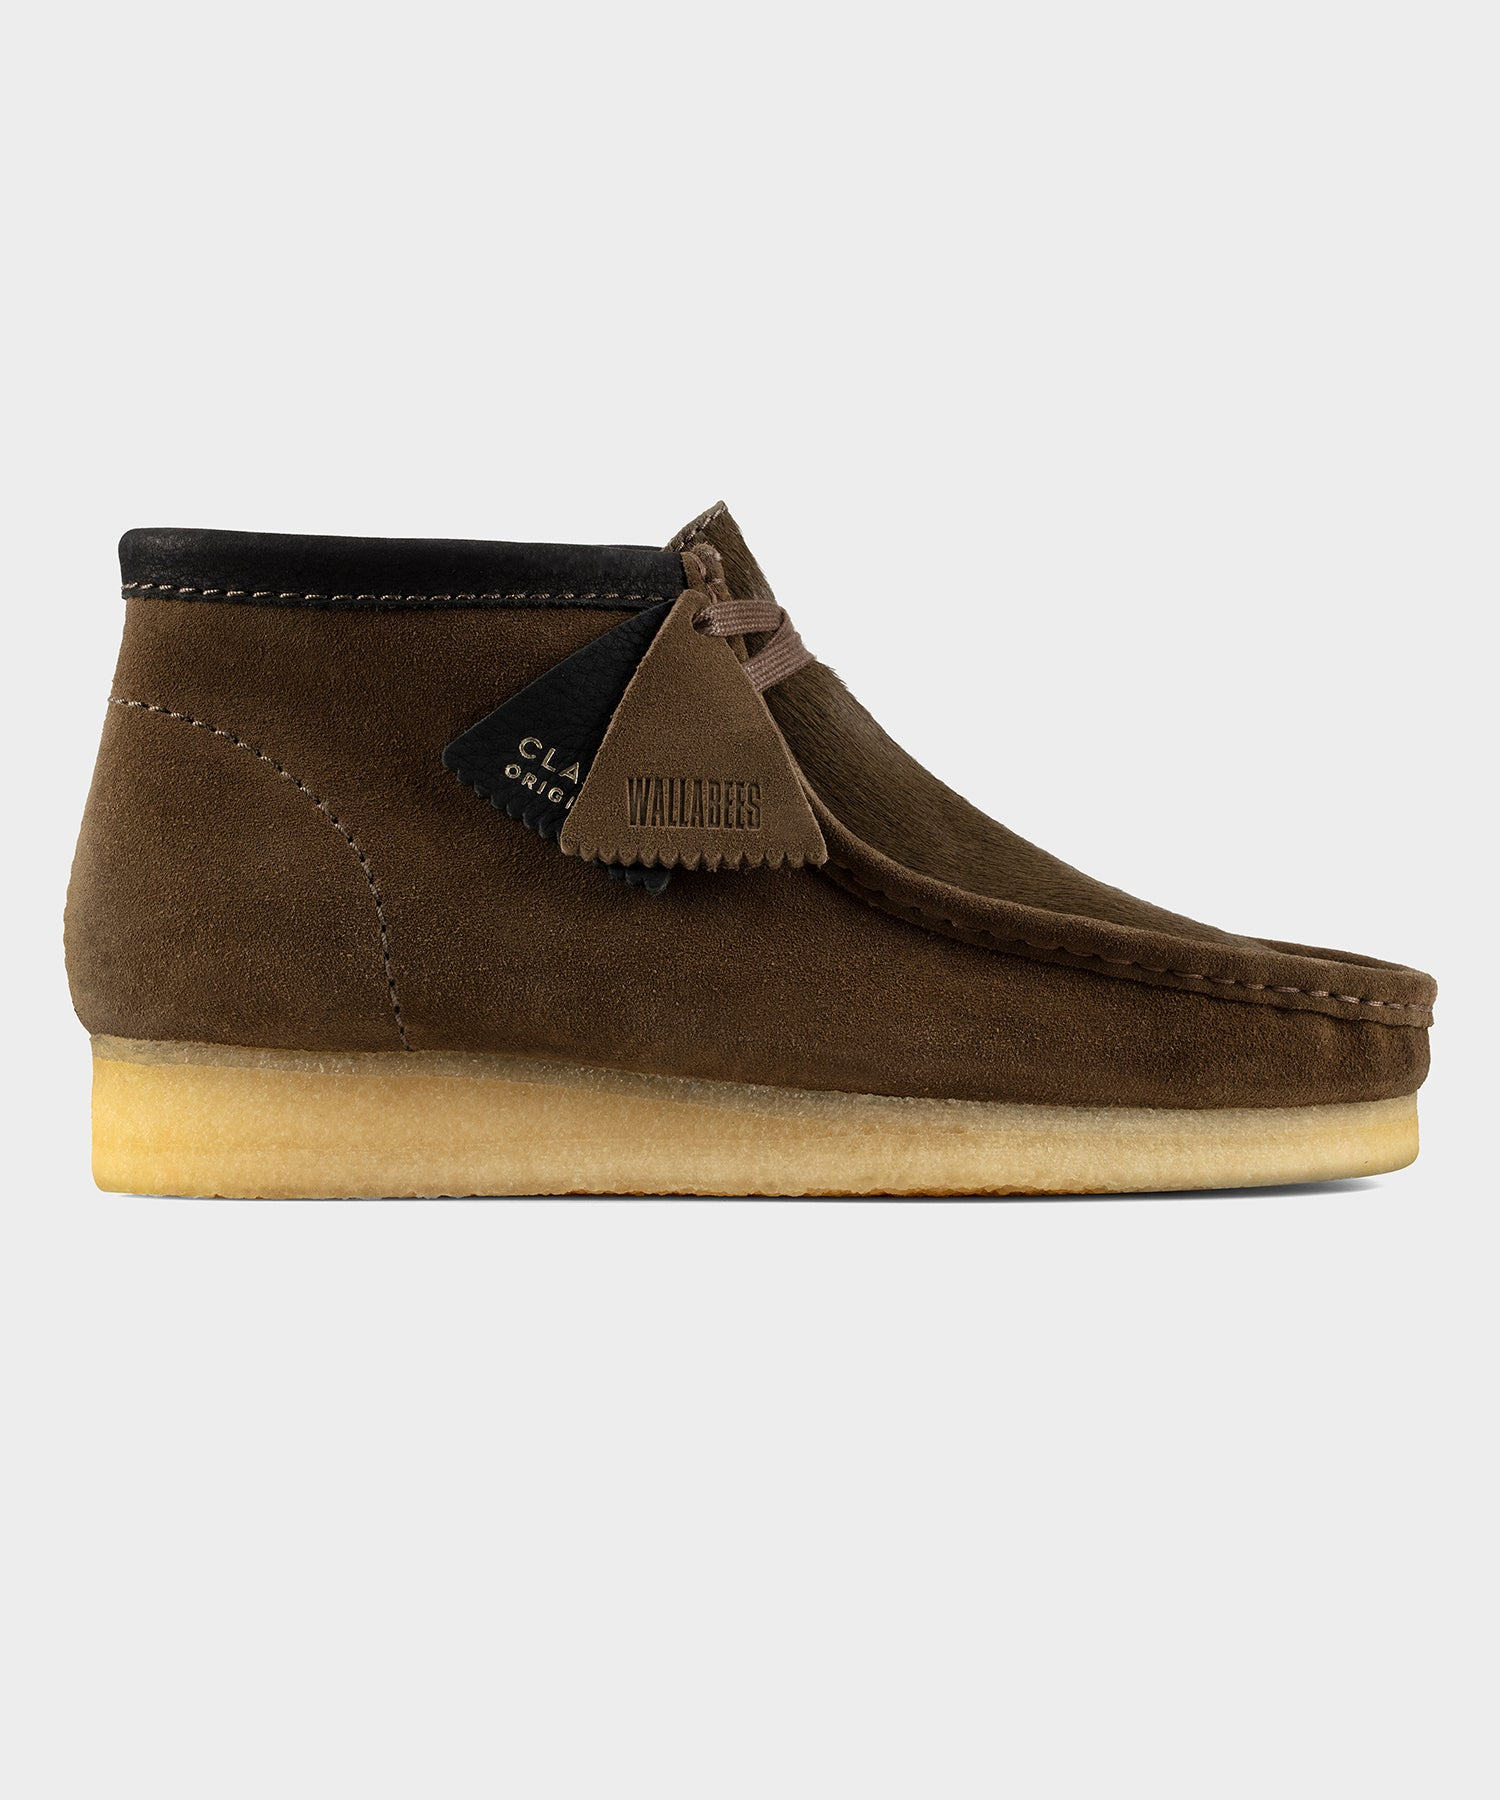 Clarks Wallabee Boot In Olive - Todd Snyder